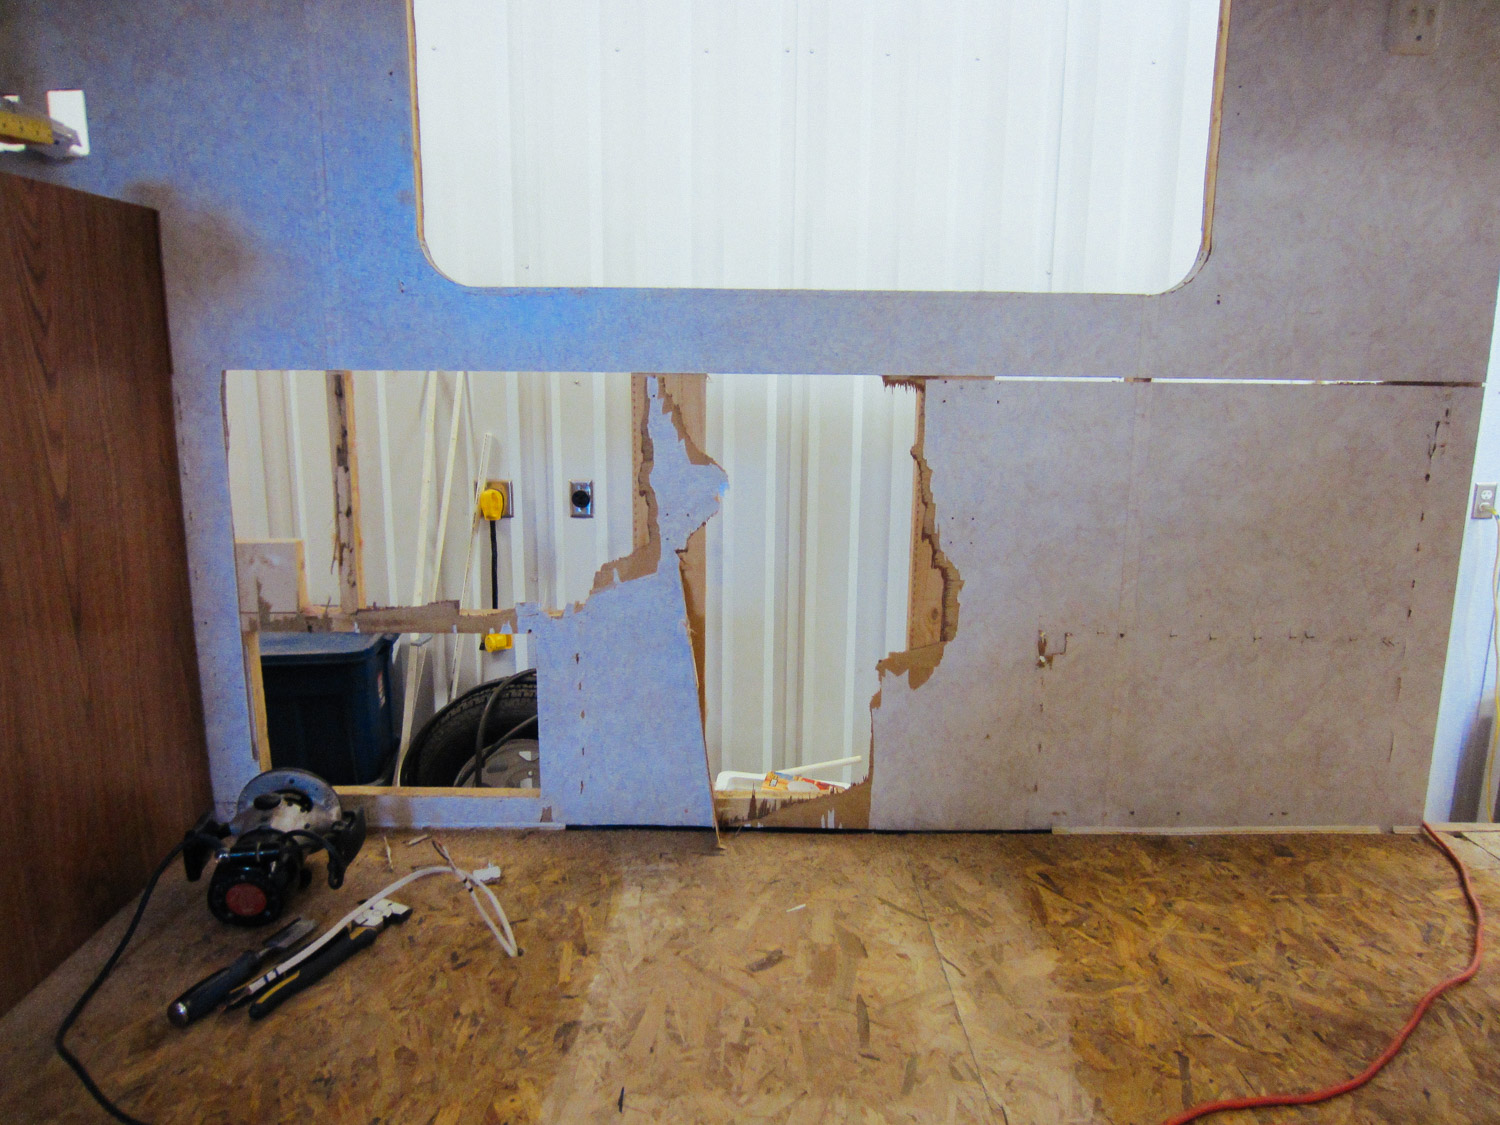 We had to remove the dinette set so we could paint it, but didn't realize how much damage it would cause to the wall.